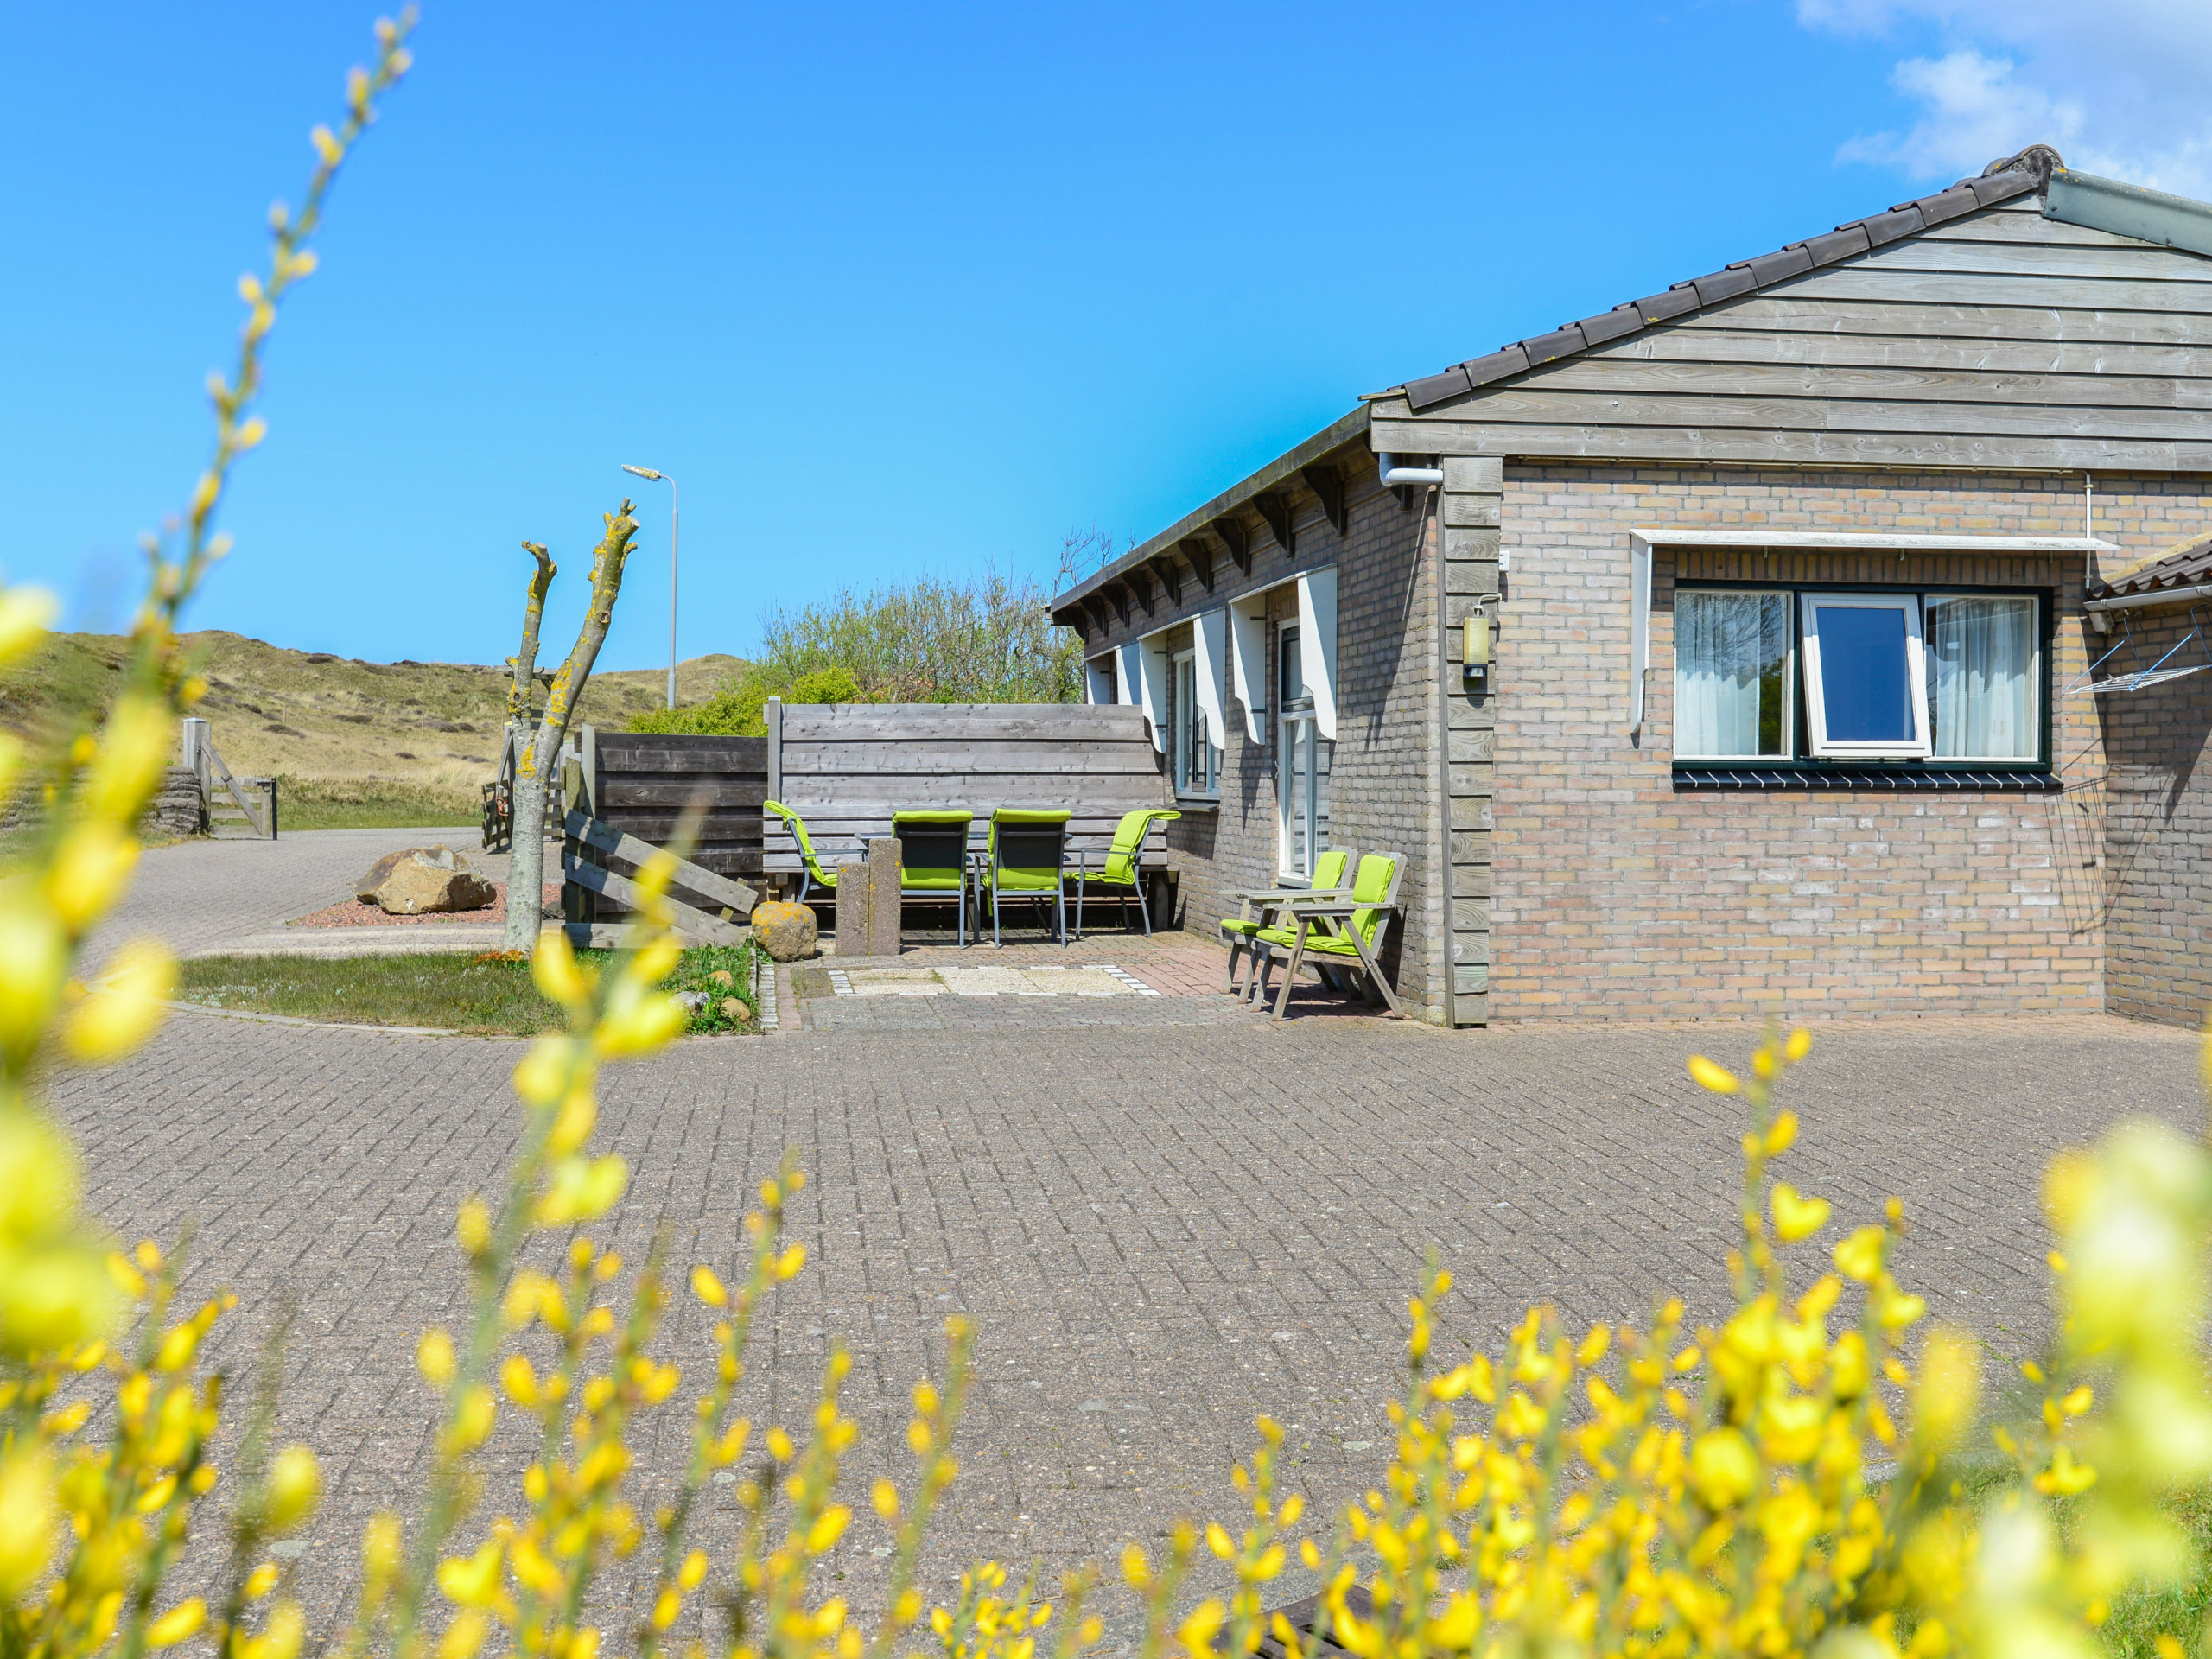 Holiday home at the foot of the dunes near Den Hoorn